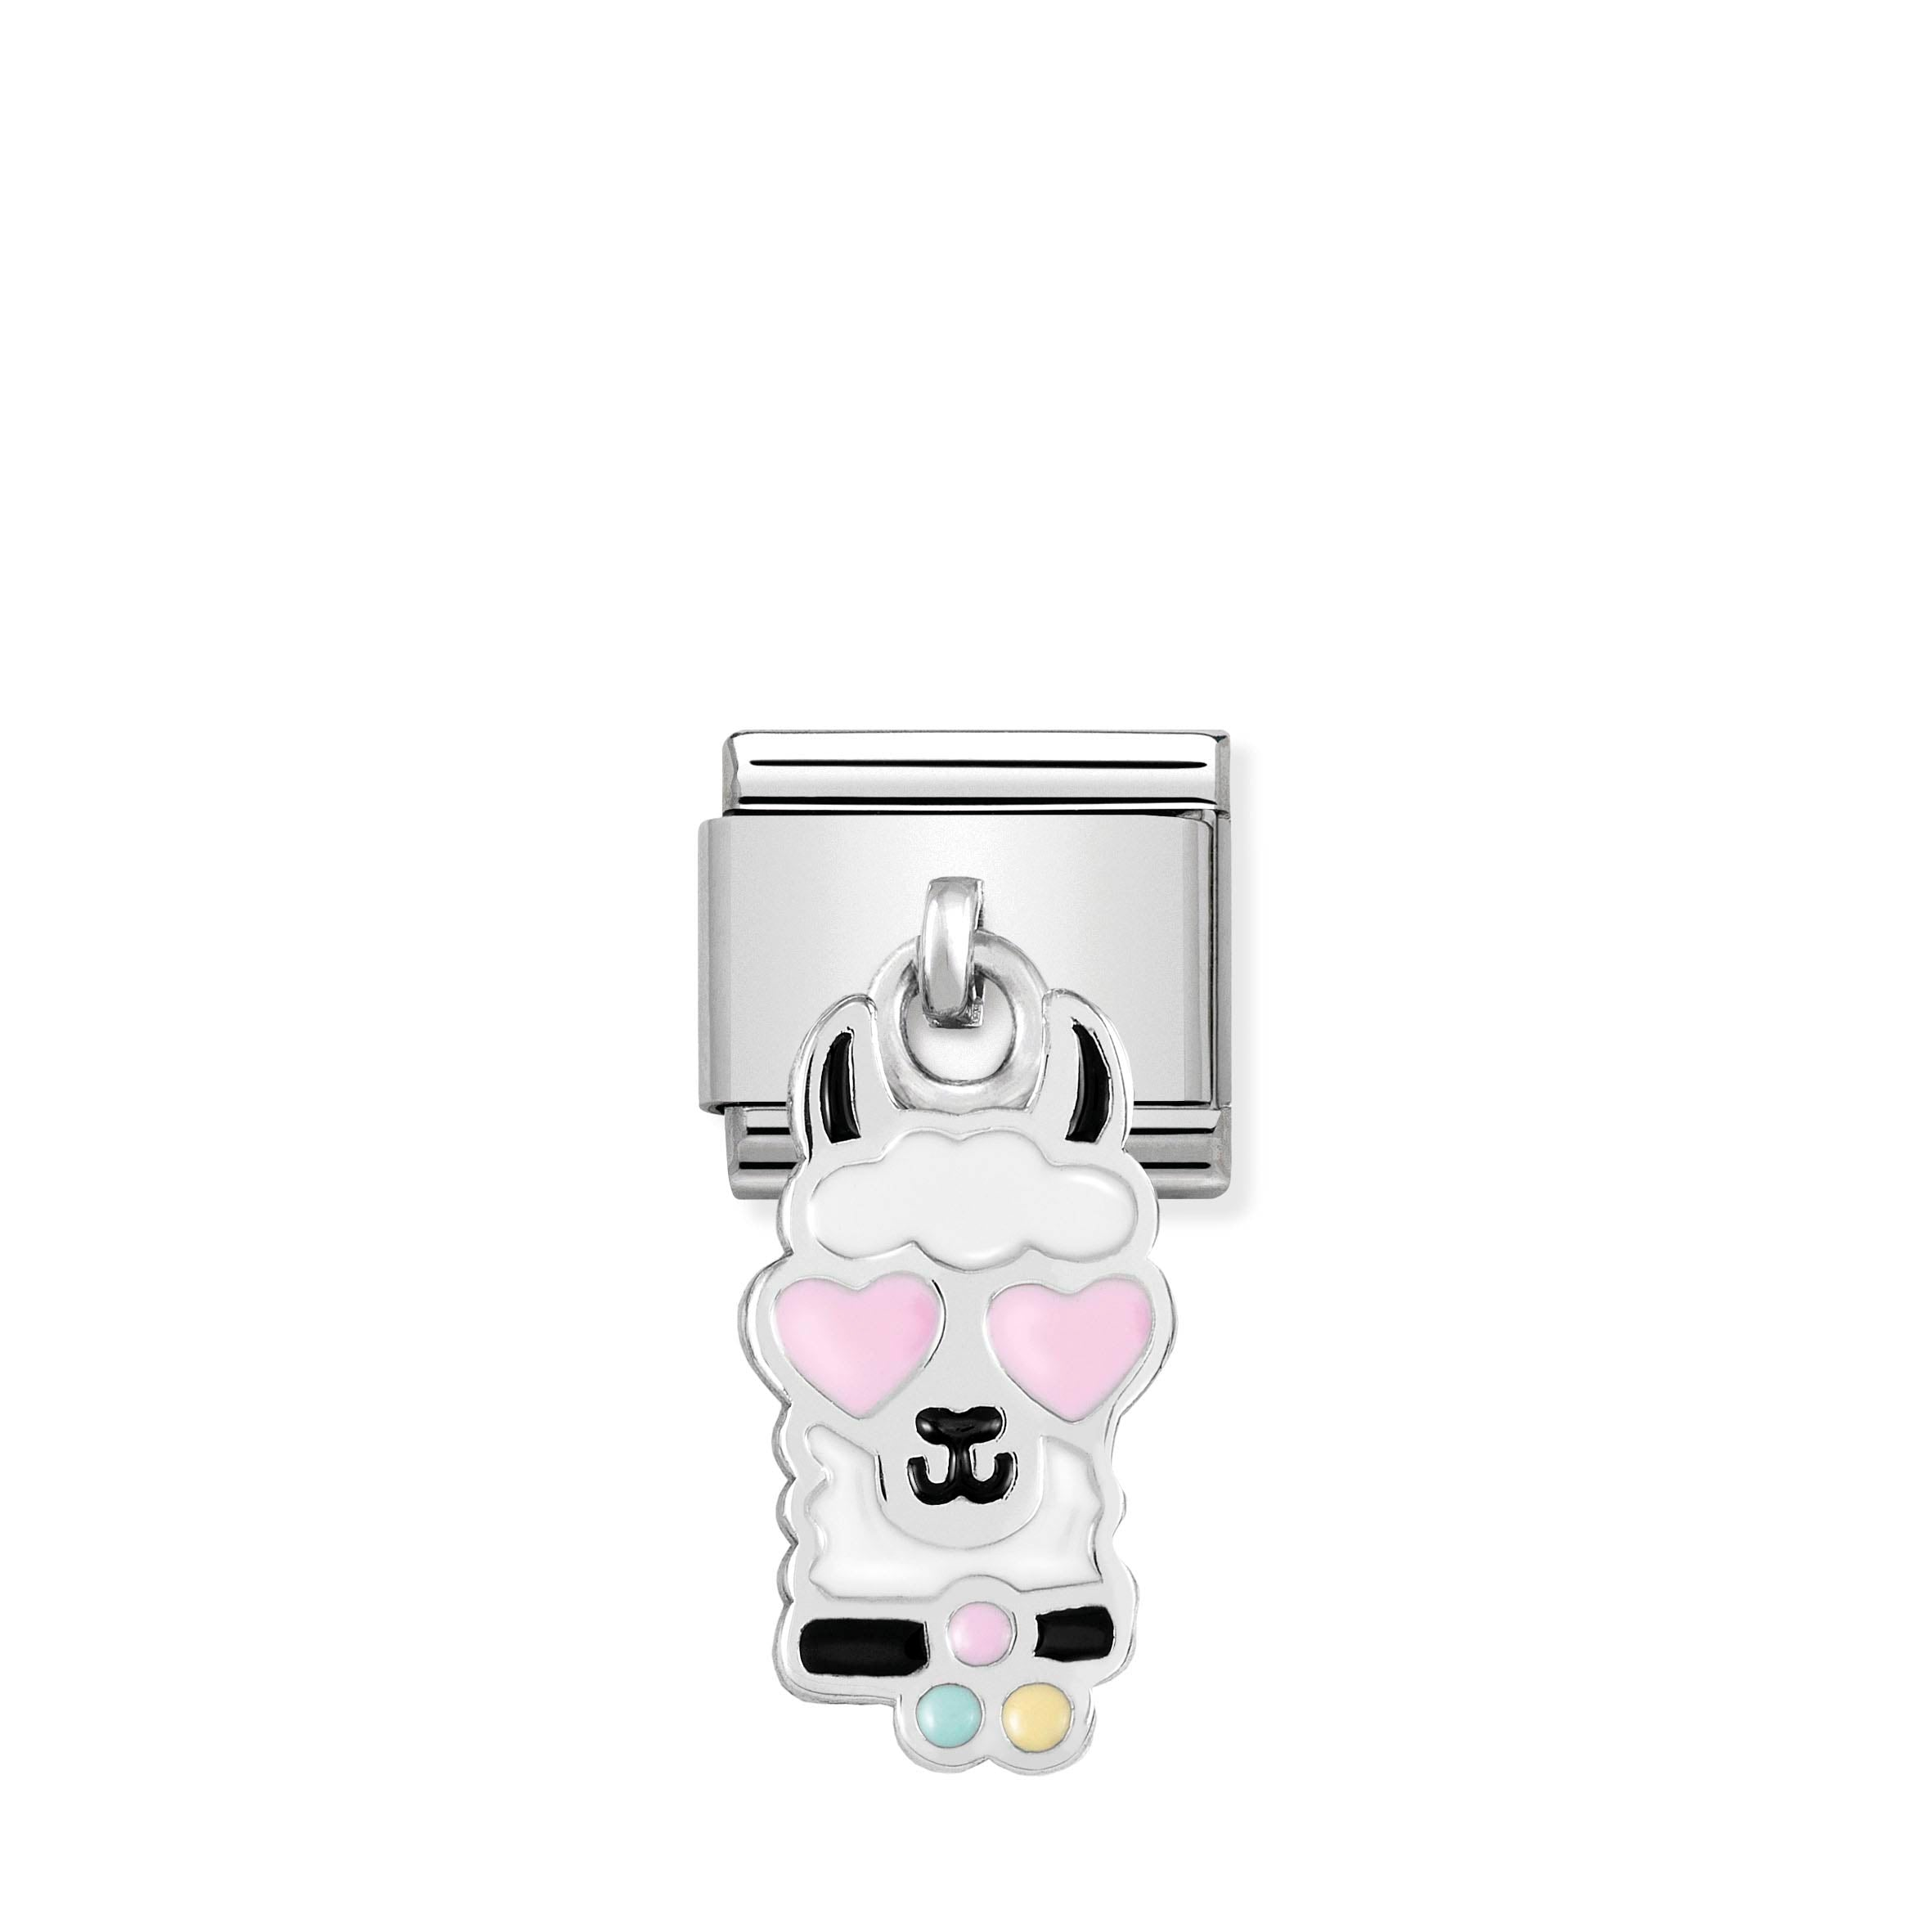 NOMINATION - Composable Classic CHARMS st/st, sterling silver & enamel (Llama head)